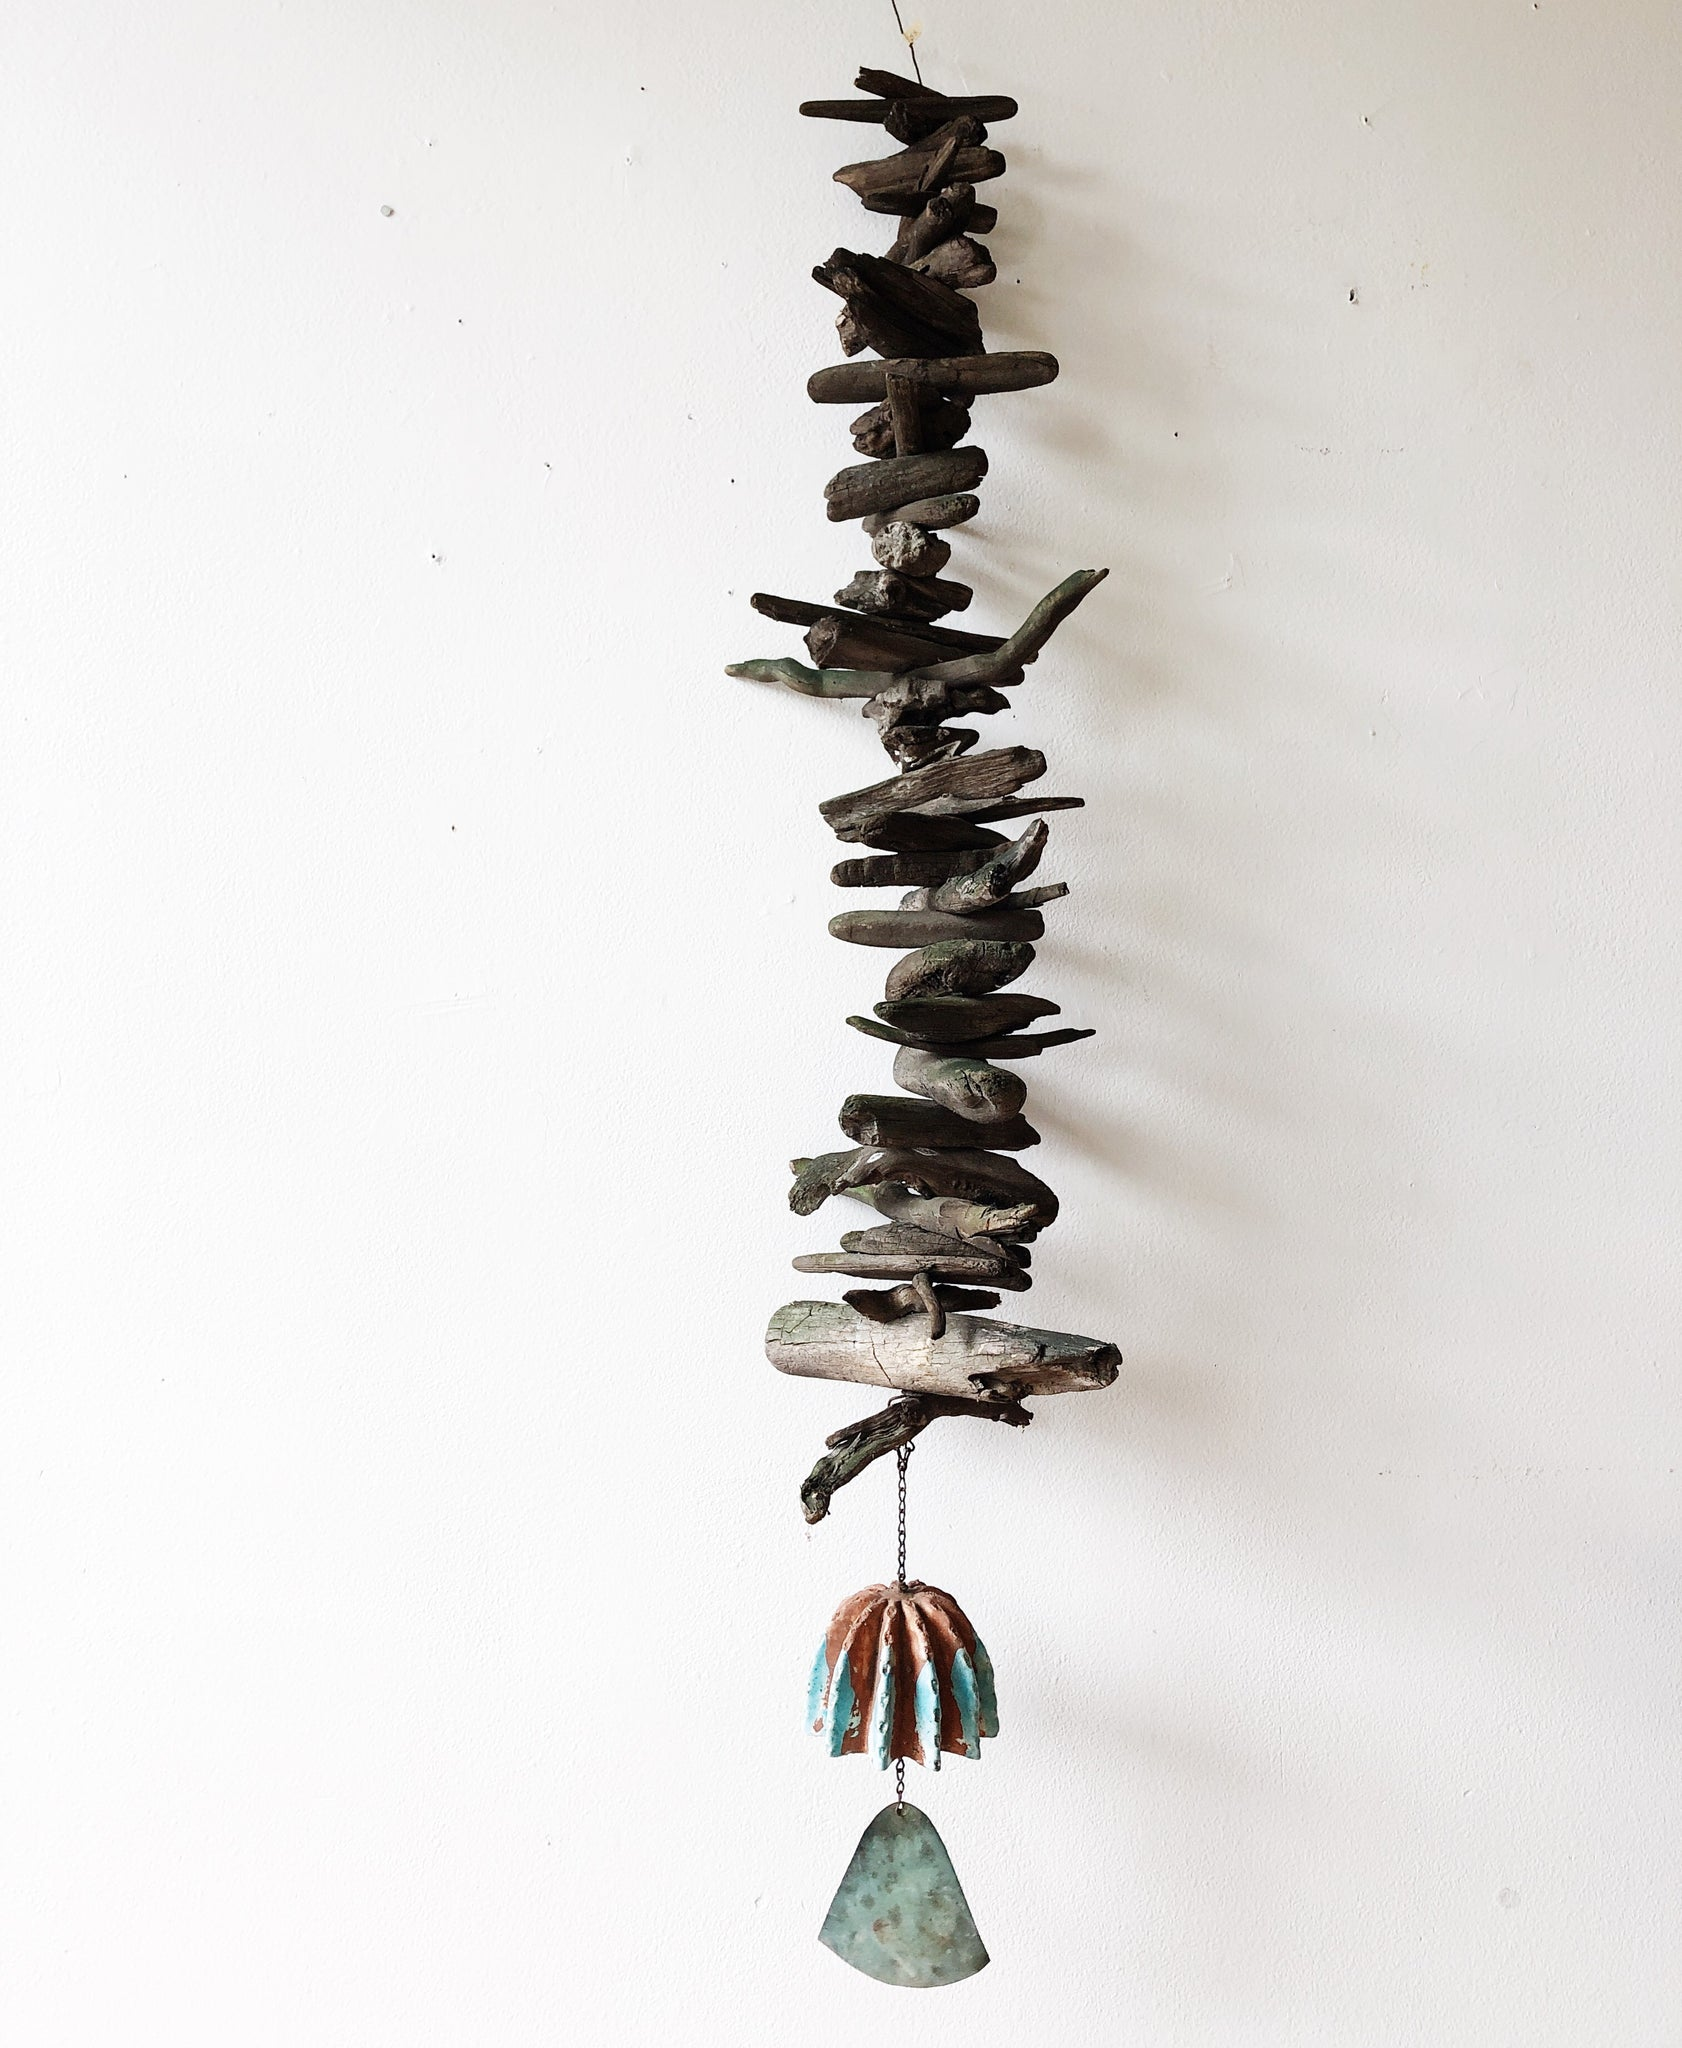 Giant Driftwood and Ceramic Wind Chime